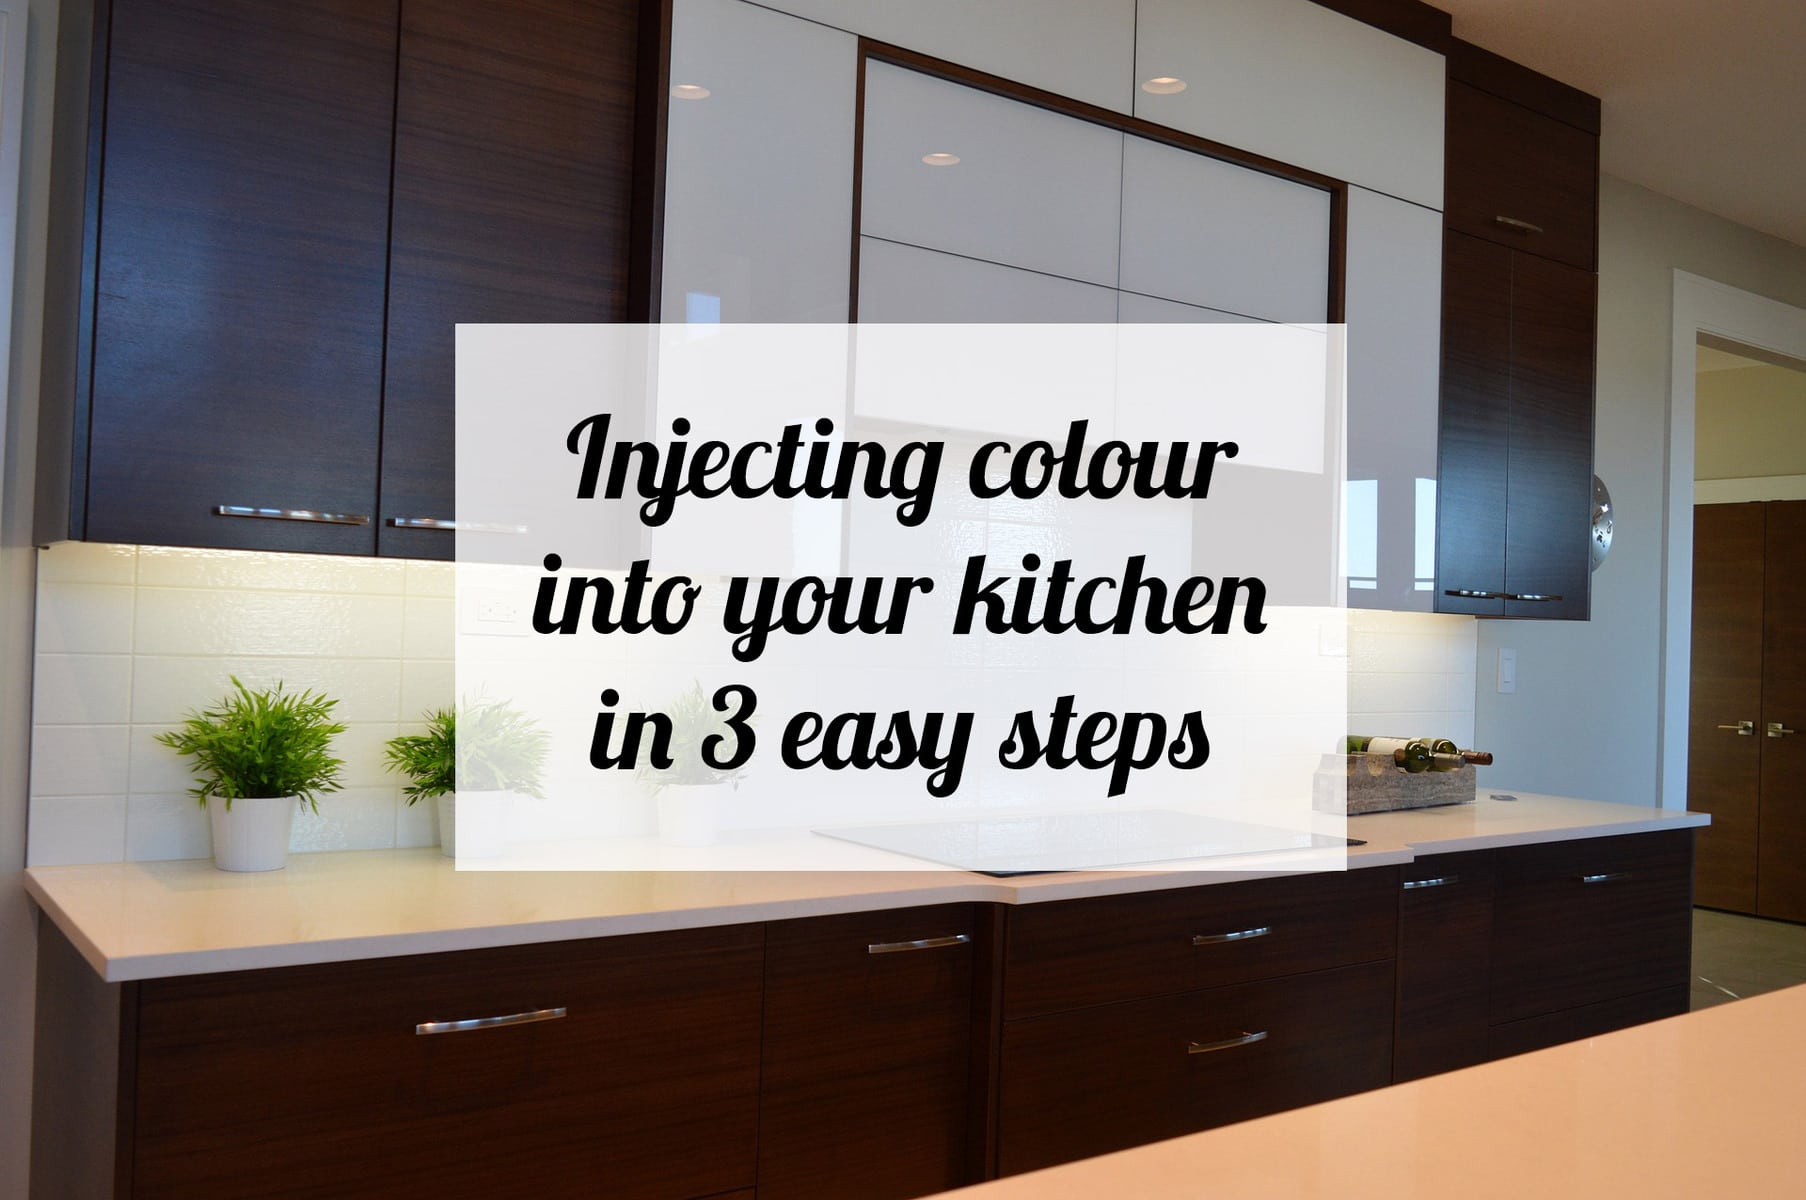 Injecting colour into your kitchen in 3 easy steps